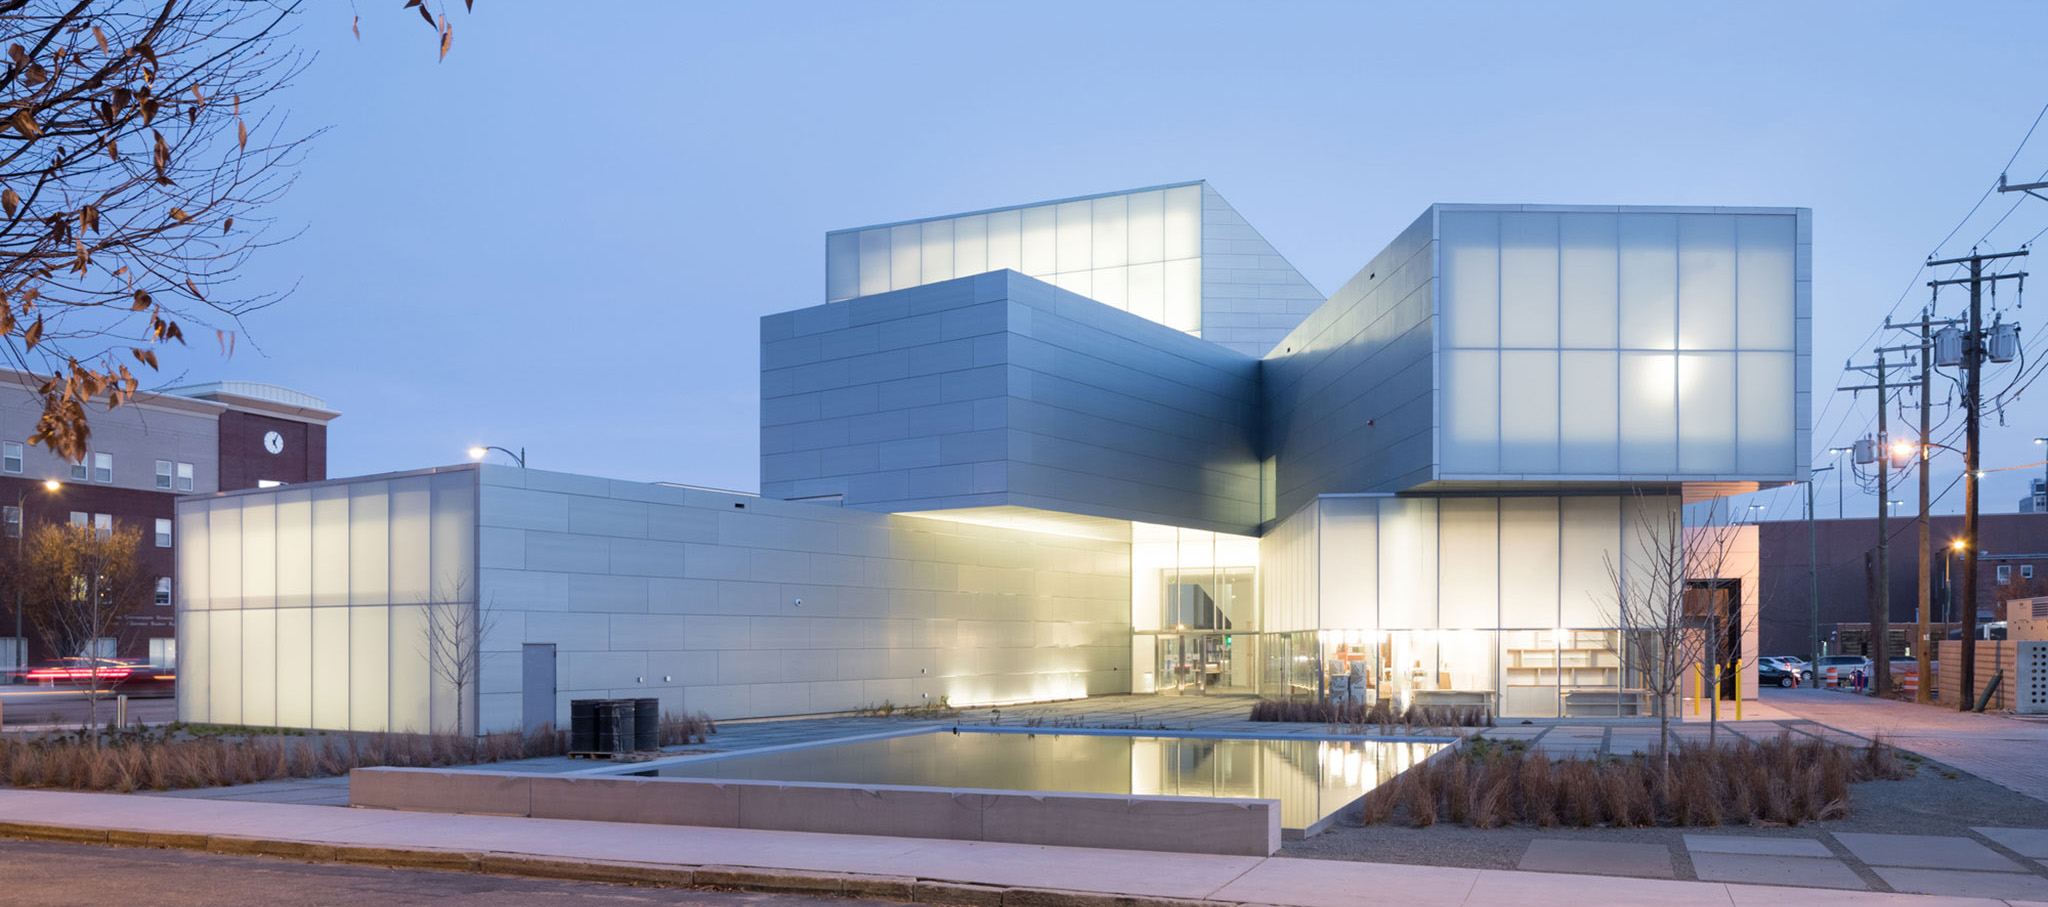 Institute for Contemporary Art, VCU by Steven Holl Architects. Photograph © Iwan Baan